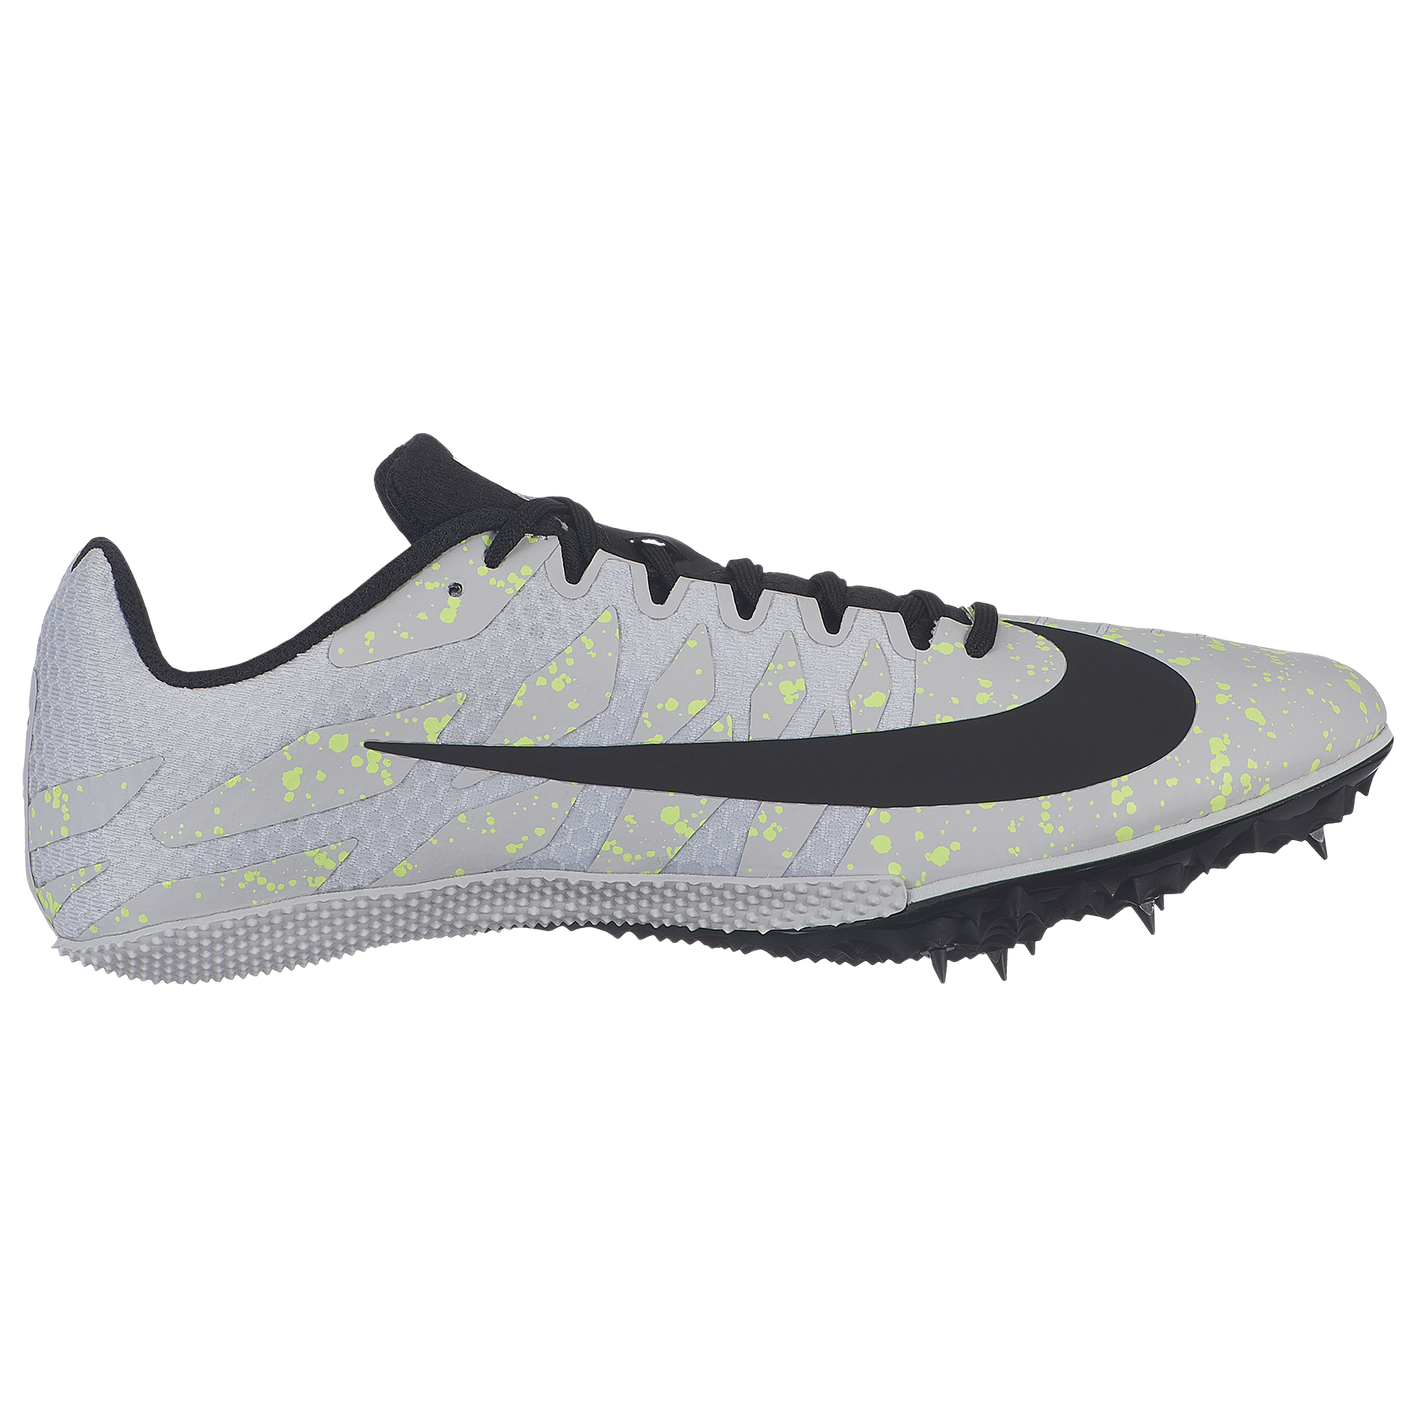 843b7d61aecd Nike Zoom Rival S 9 - Men s - Track   Field - Shoes - Pure Platinum ...